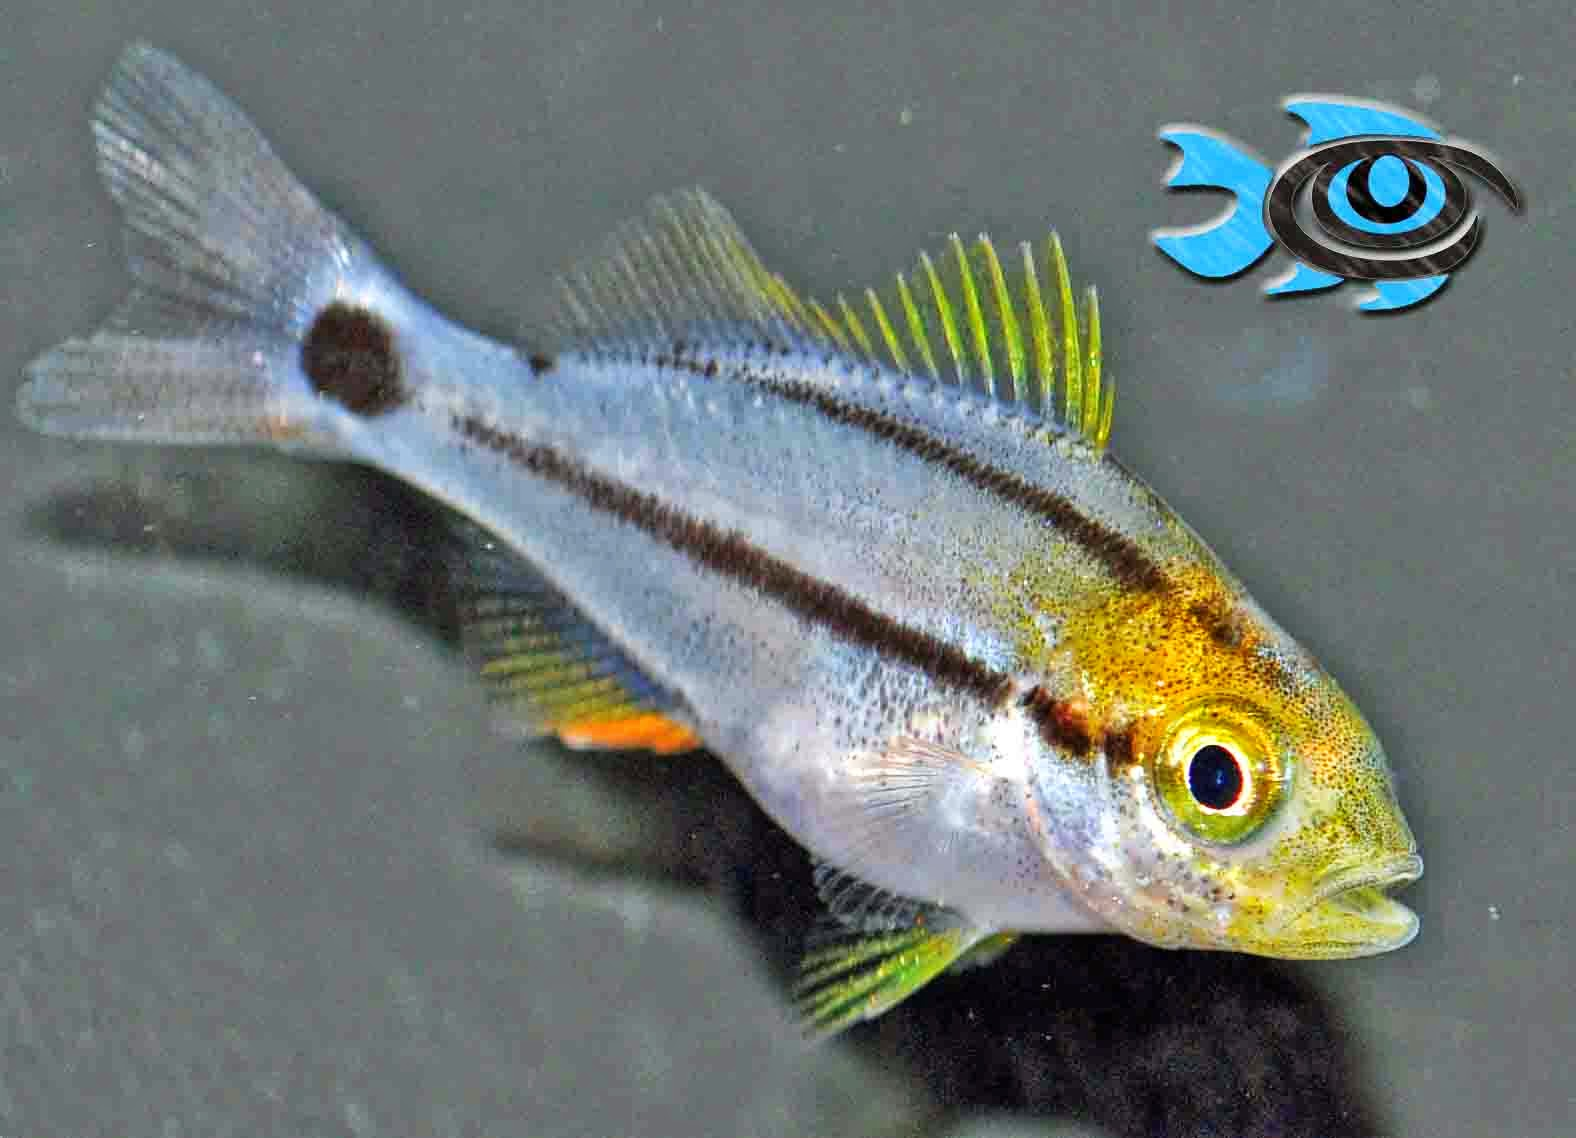 Figure 1. Captive bred Porkfish juvenile available from FishEye Aquaculture.